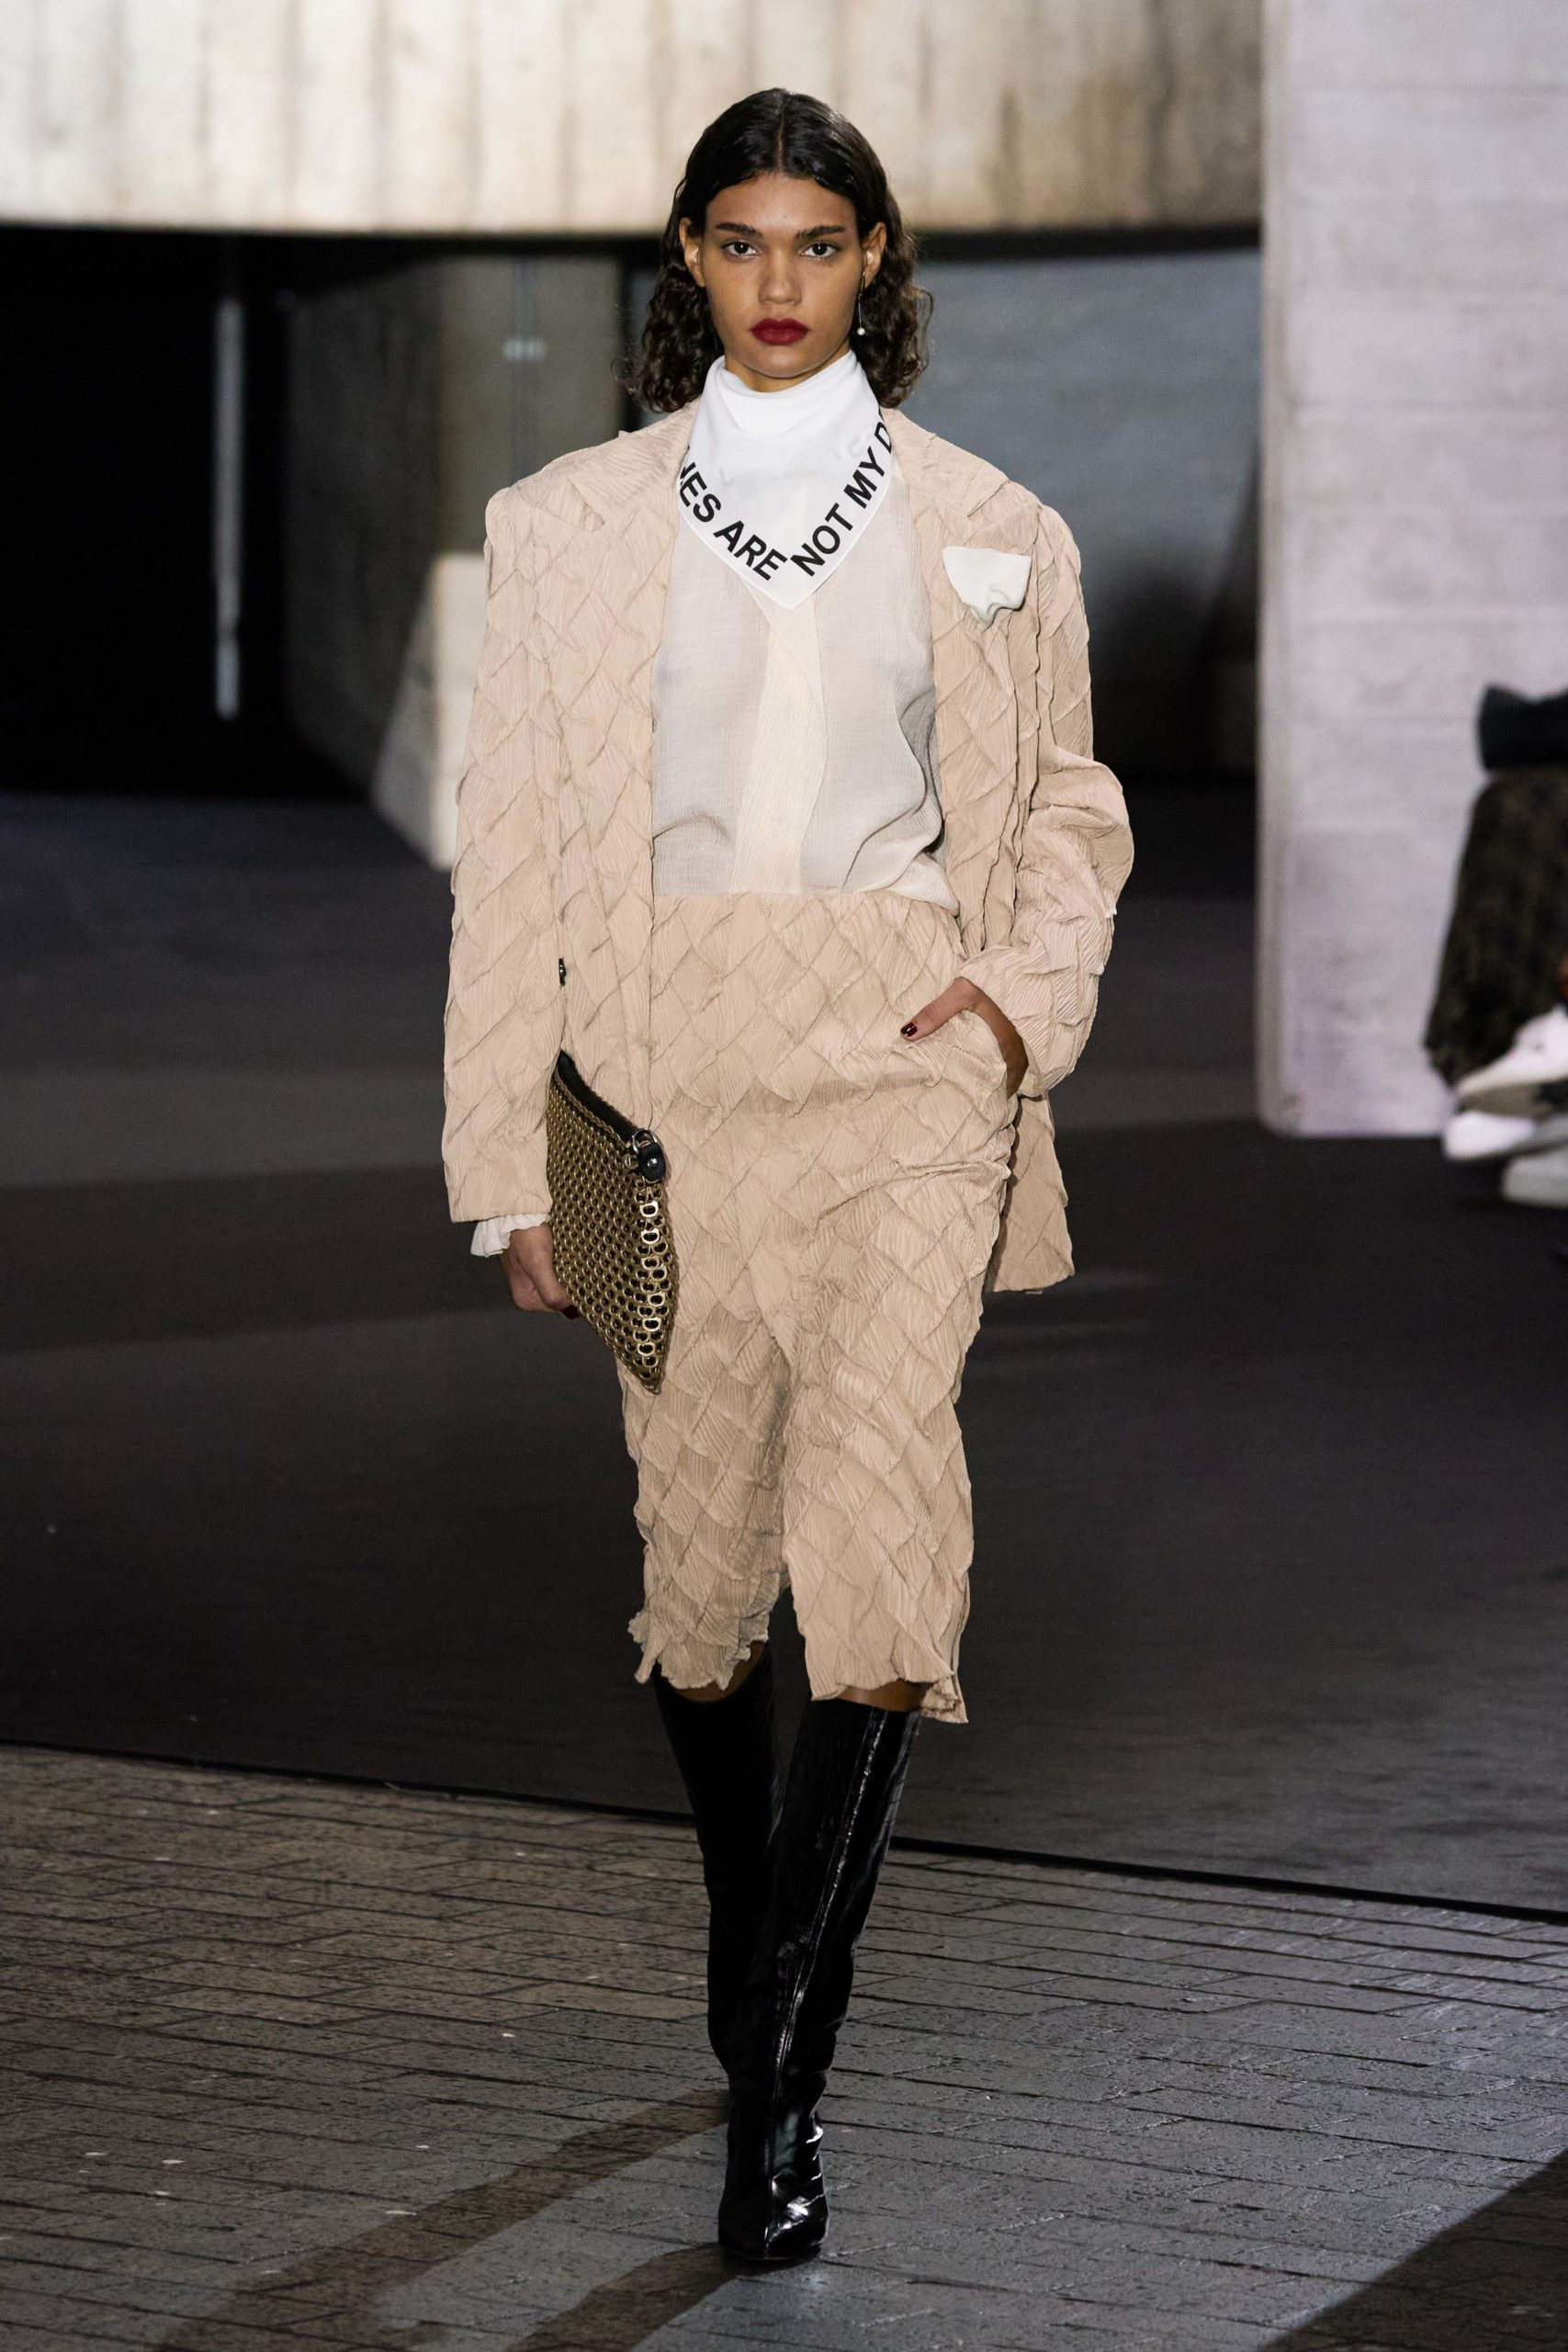 Rolan Mouret Fall 2020 trends runway coverage Ready To Wear Vogue tailleur skirt suit